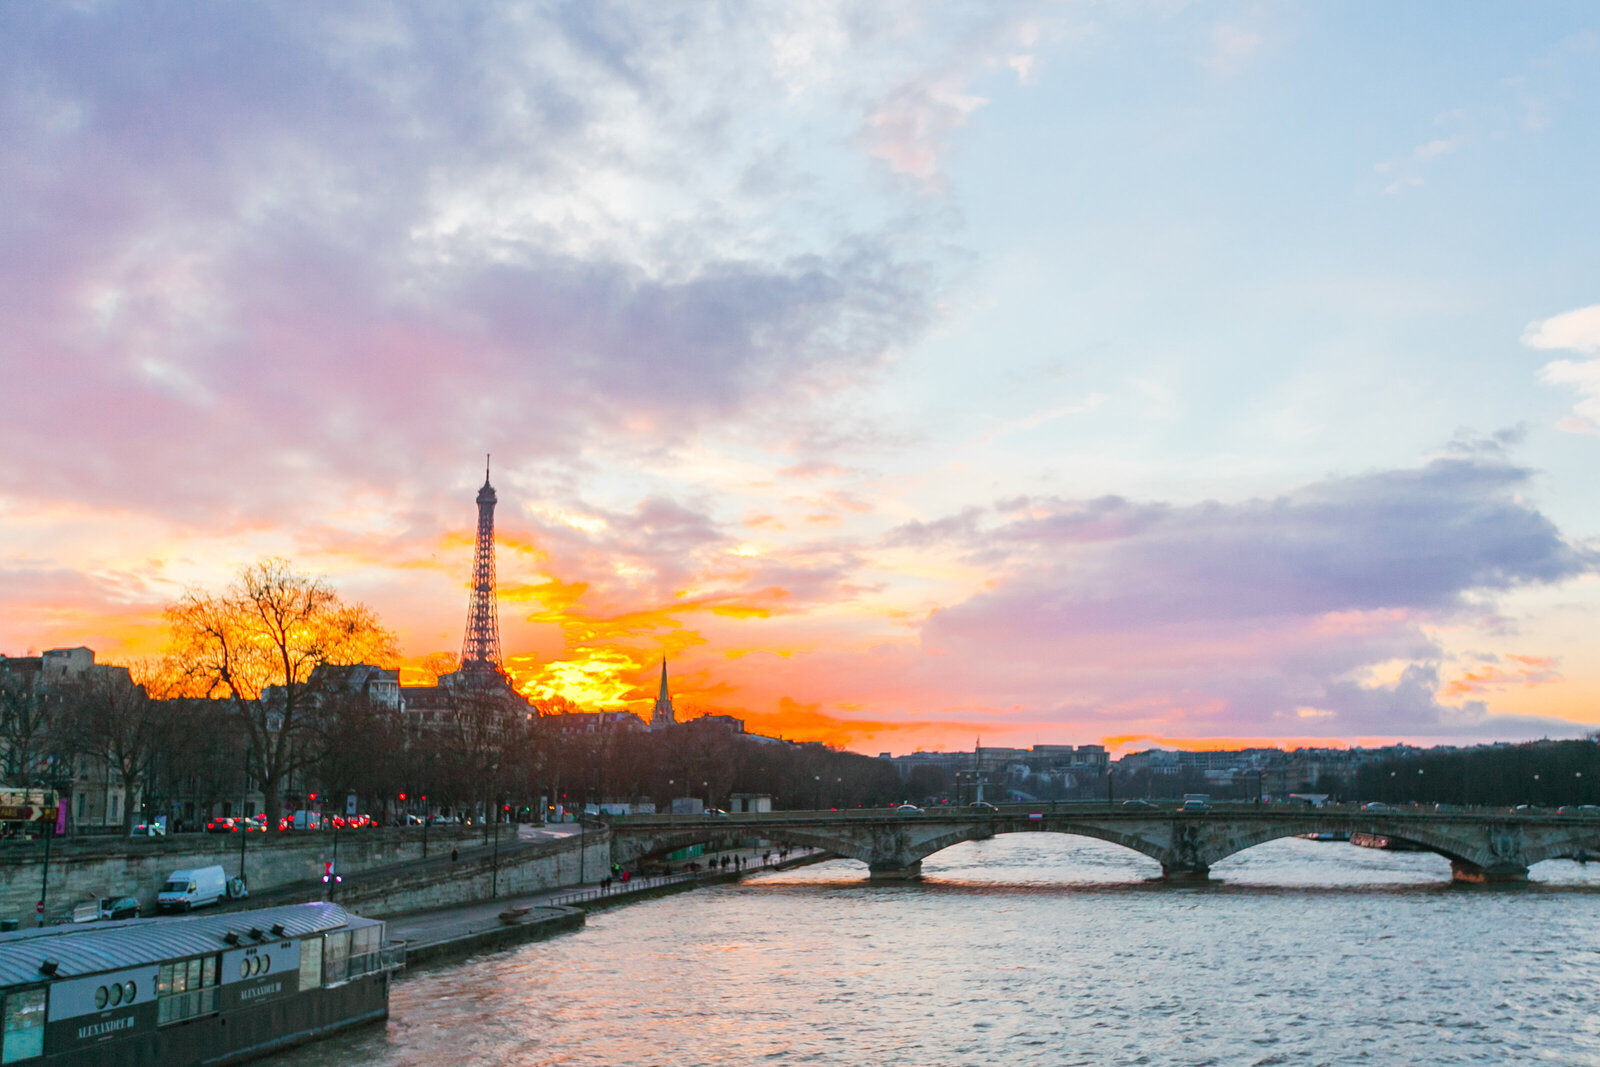 084-KBP-Paris-France-Sunset-Seine-River